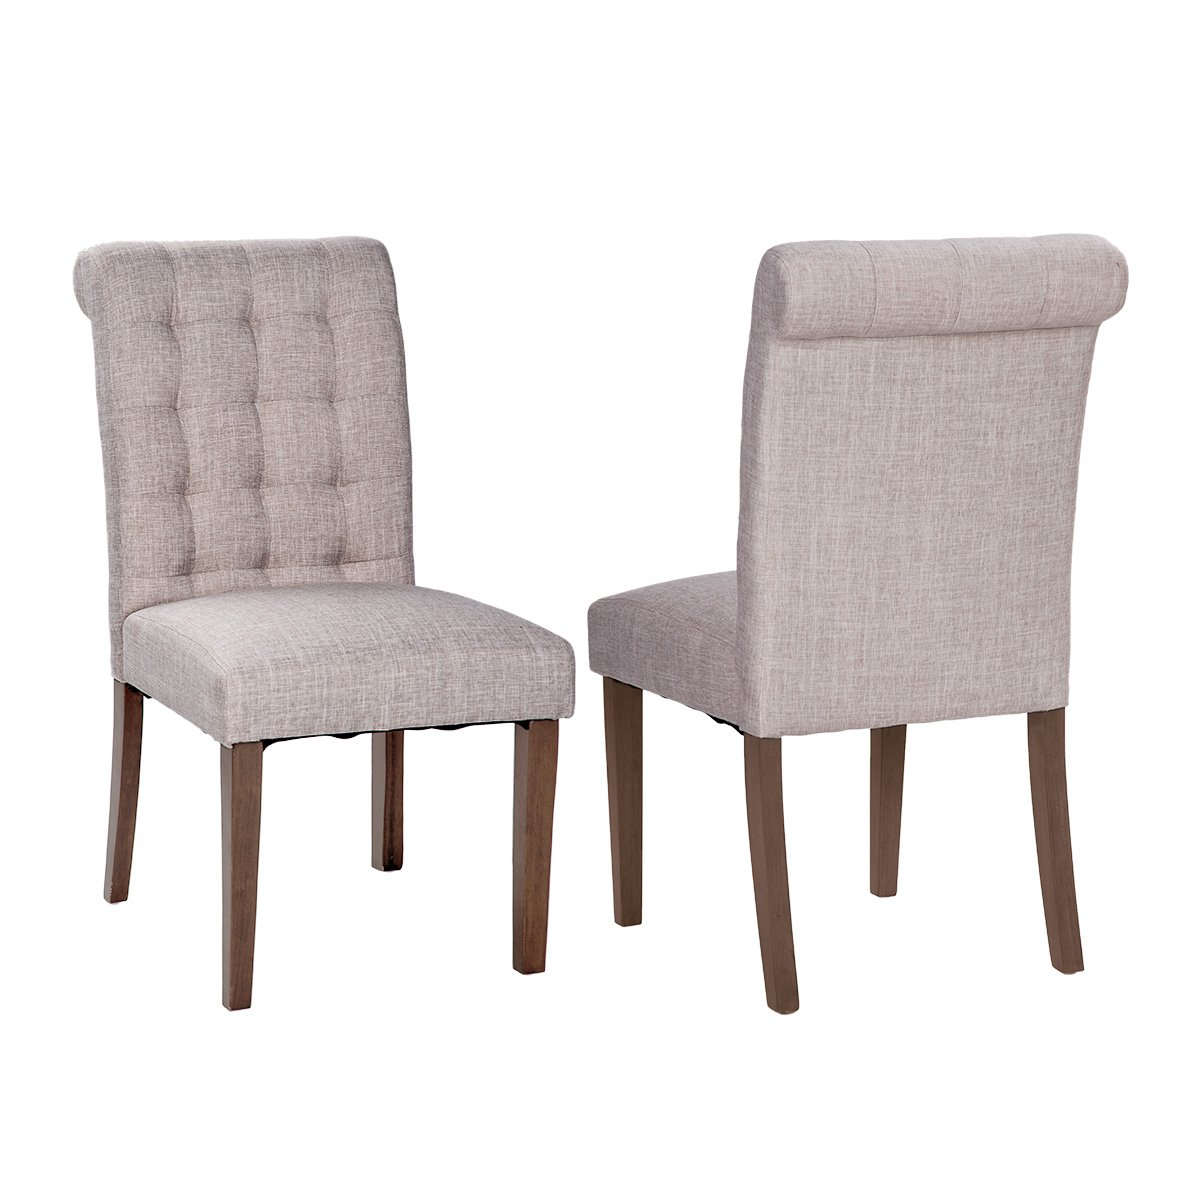 Merax Fabric Dining Chairs Padded Side Chair with Solid Wood Legs - set of 2 - Beige